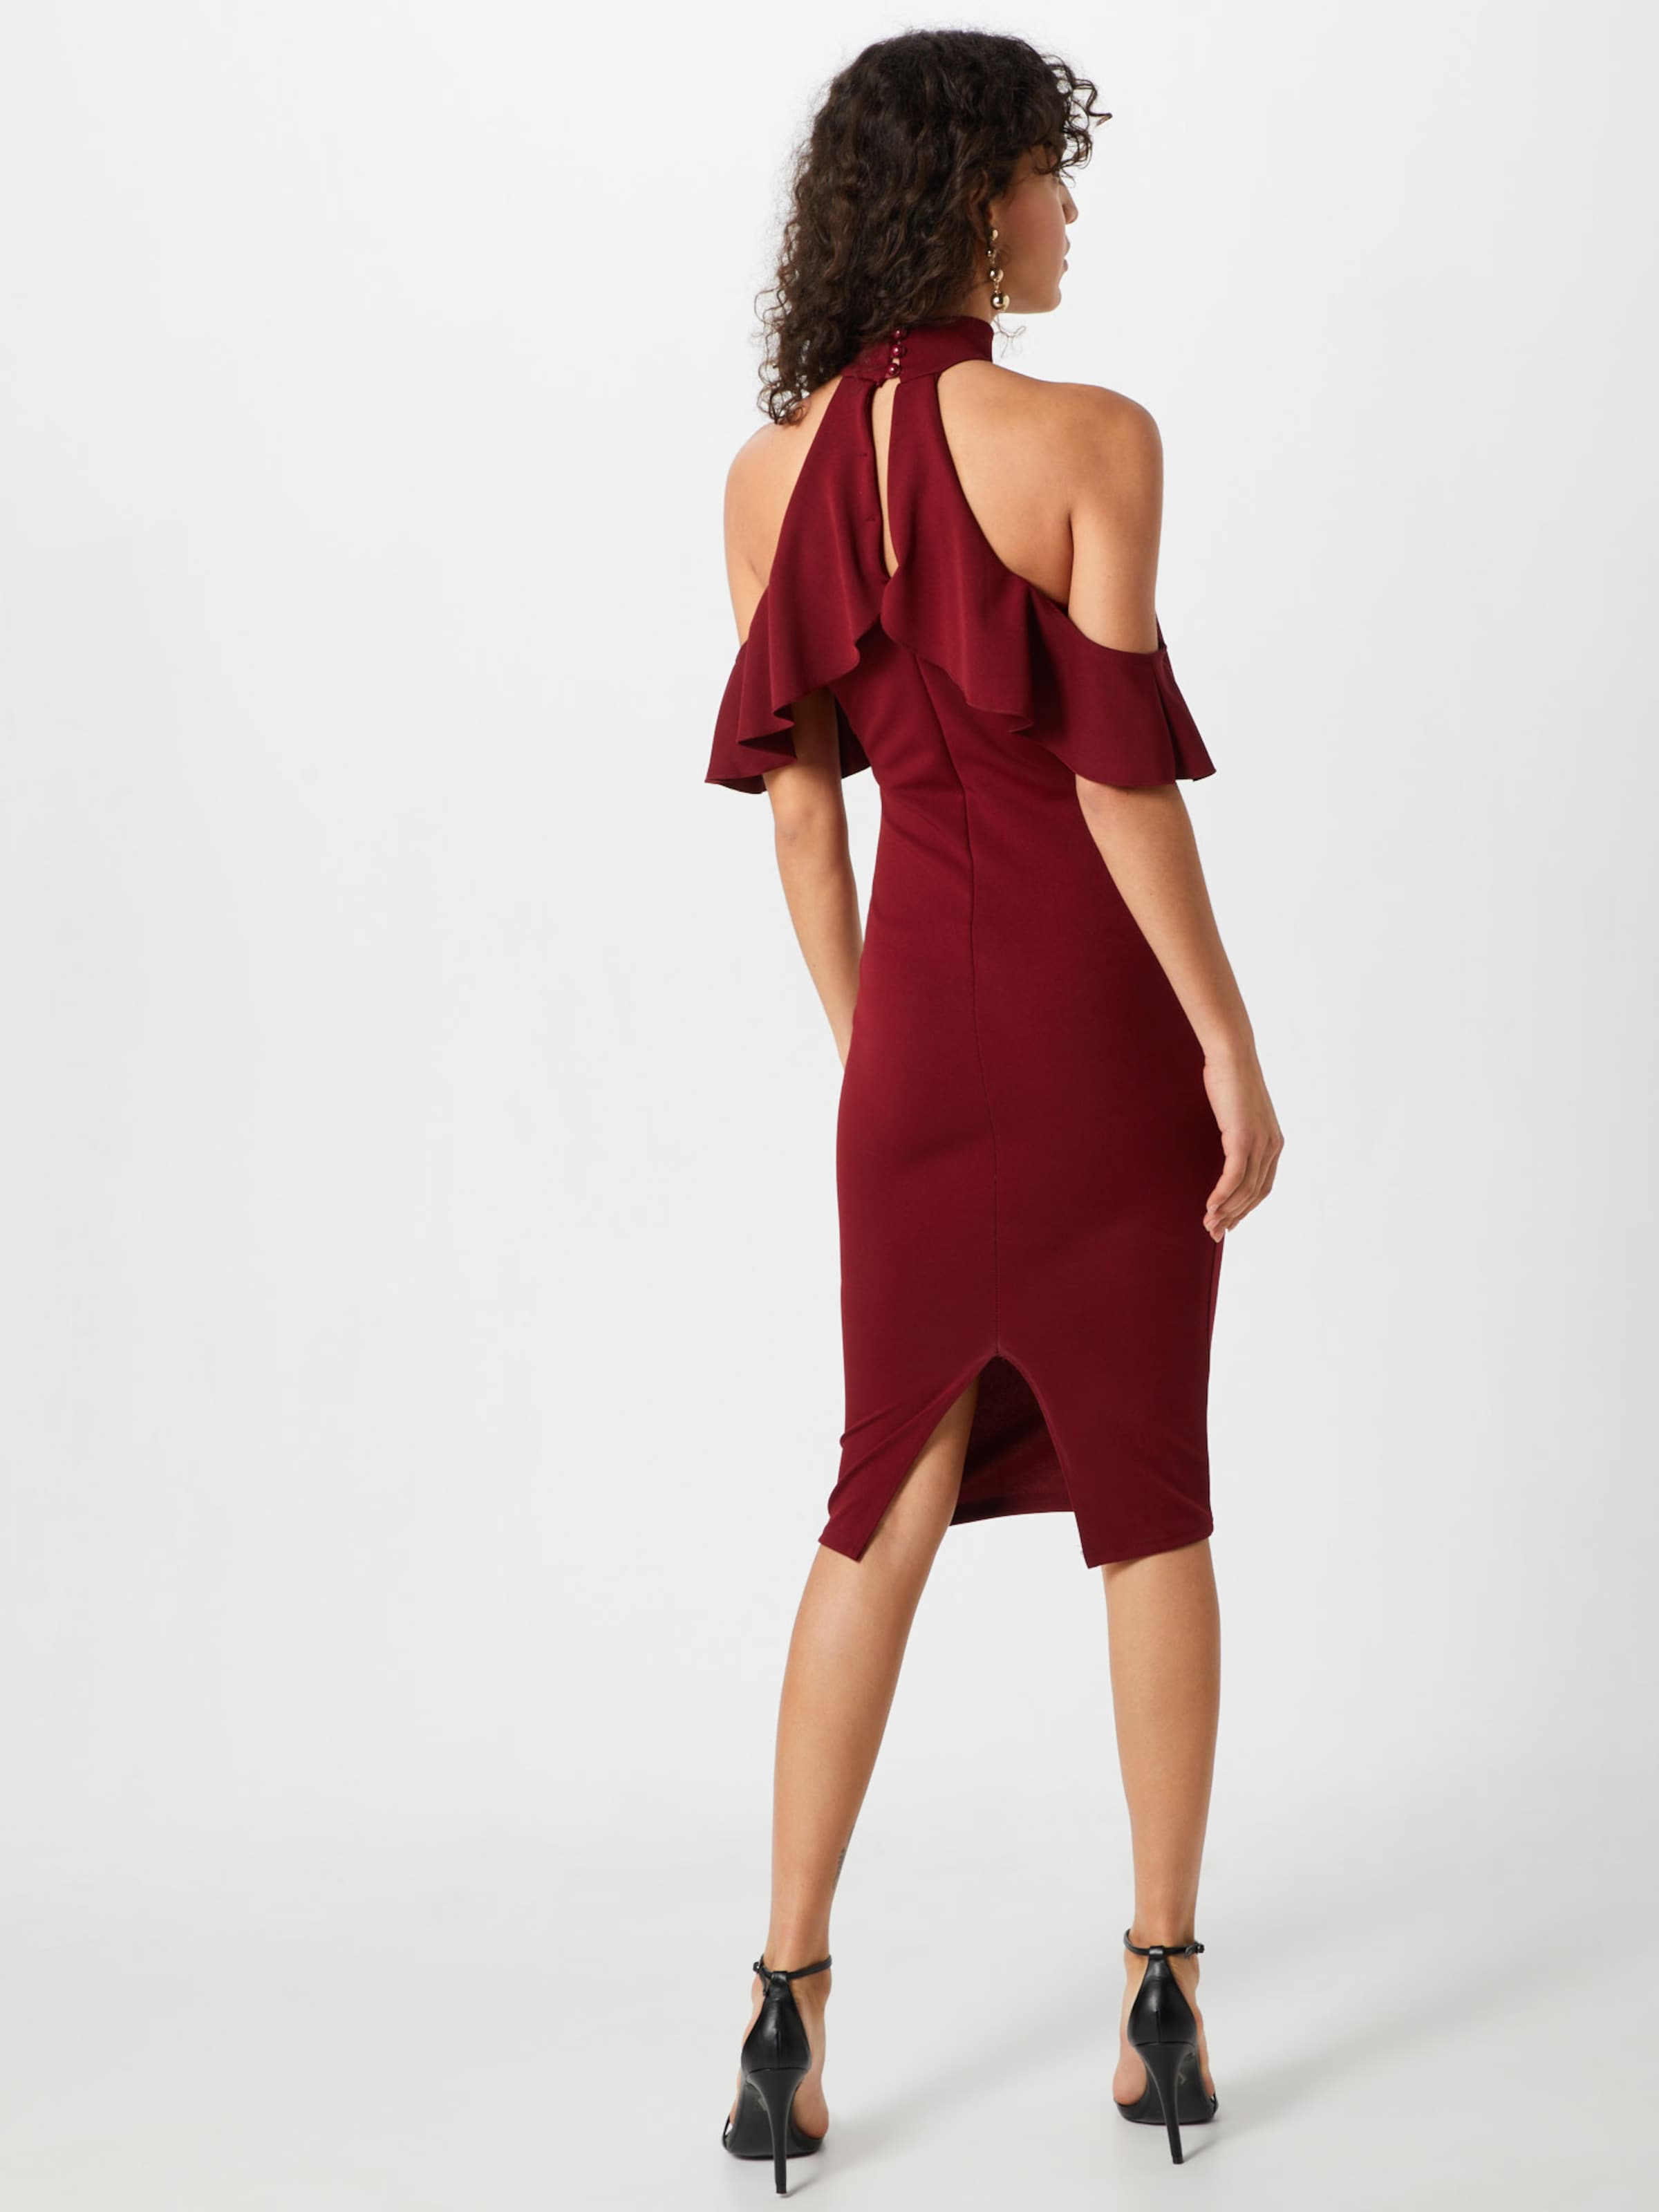 En Cold Cocktail Frill Dress' De Robe Midi SchwarzNaturweiß Missguided 'high Neck Shoulder Ivm76gybYf